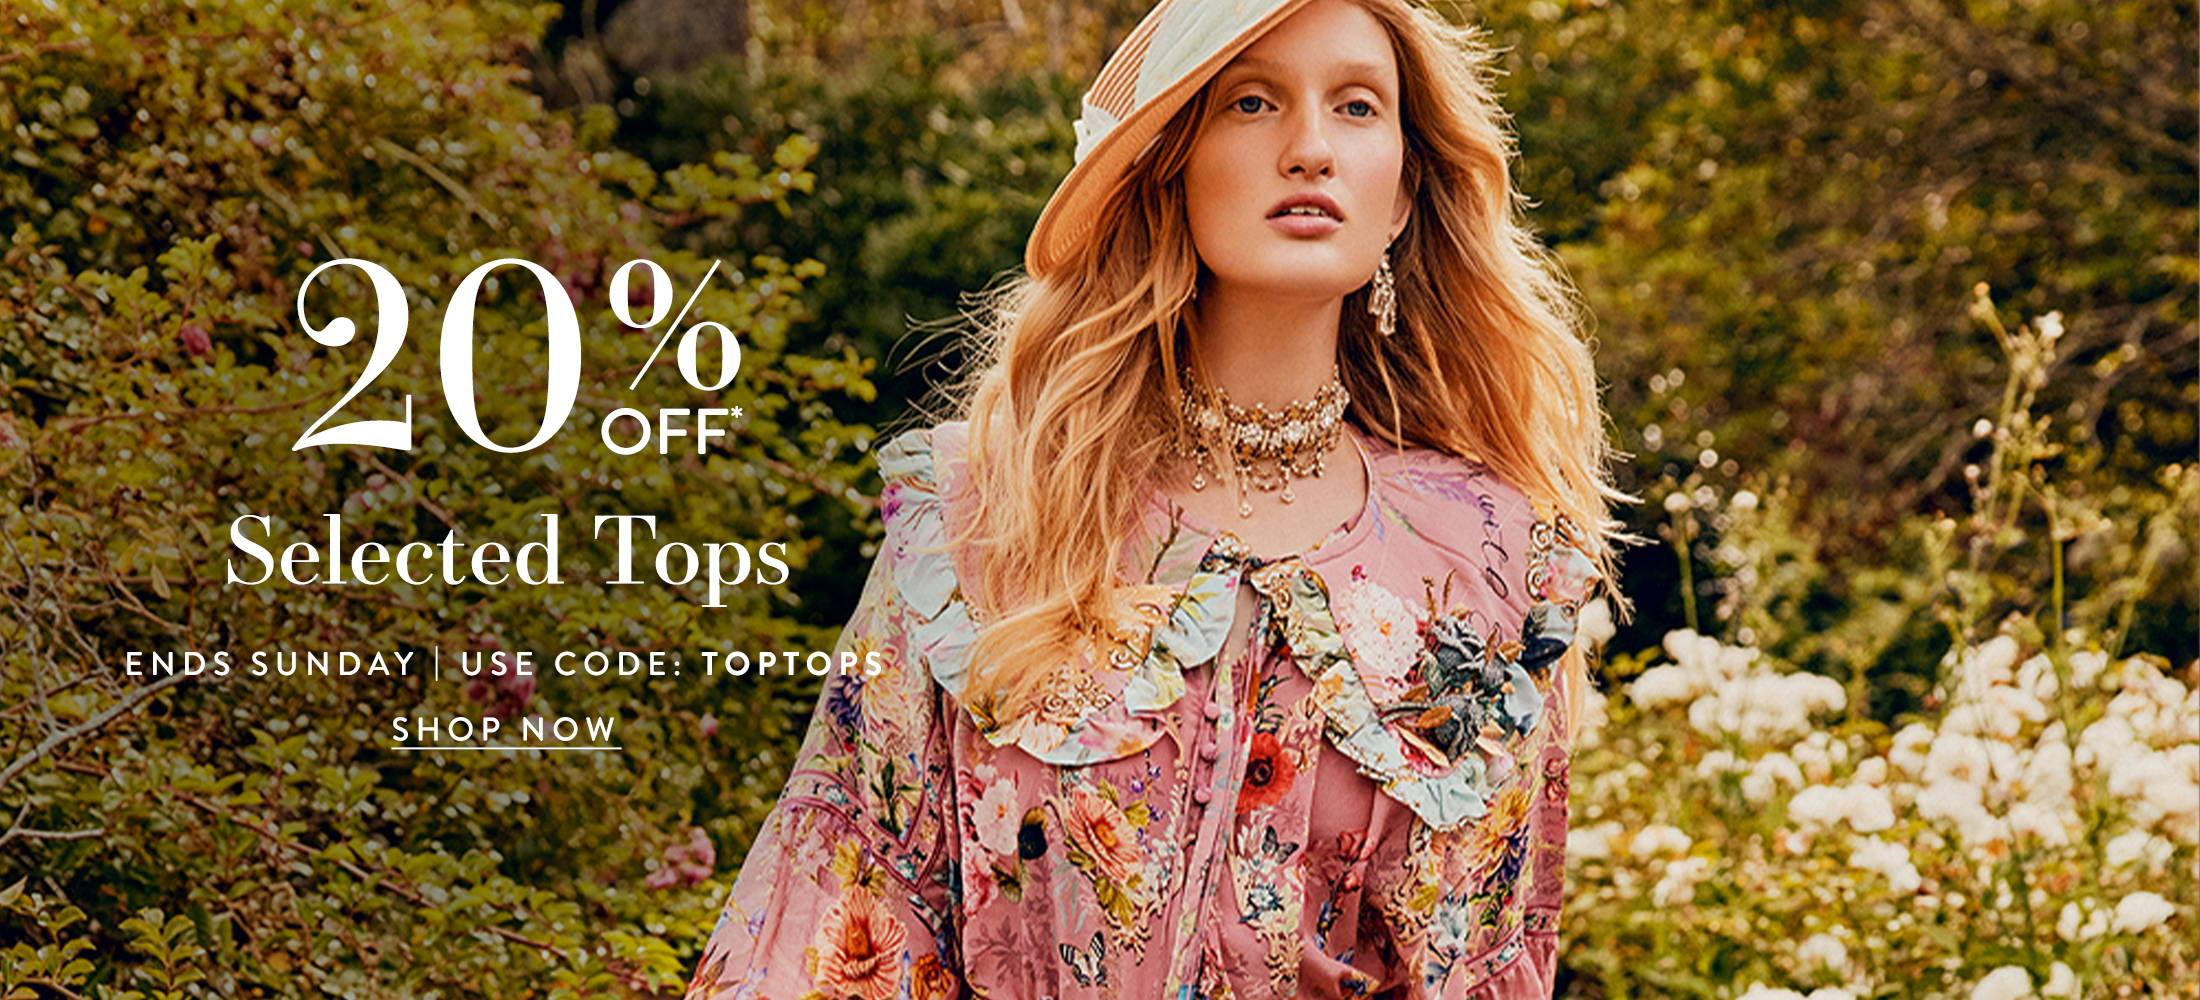 20% Off Selected Tops  | Use Code: TOPTOPS